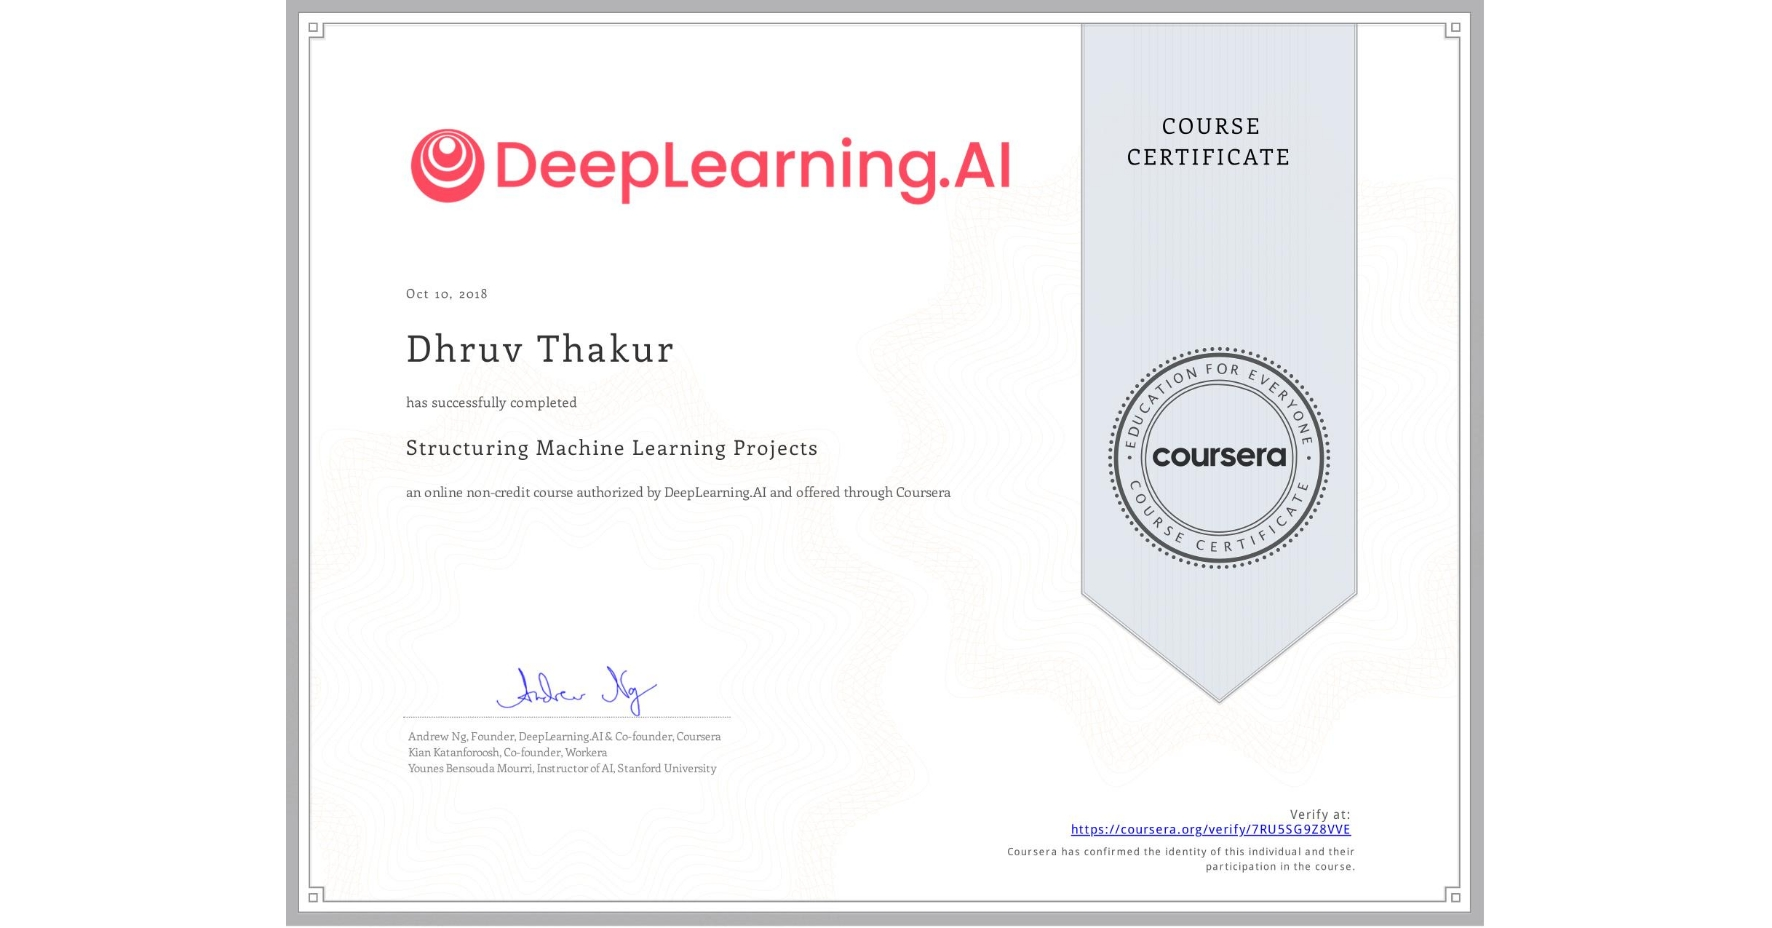 View certificate for Dhruv Thakur, Structuring Machine Learning Projects, an online non-credit course authorized by DeepLearning.AI and offered through Coursera